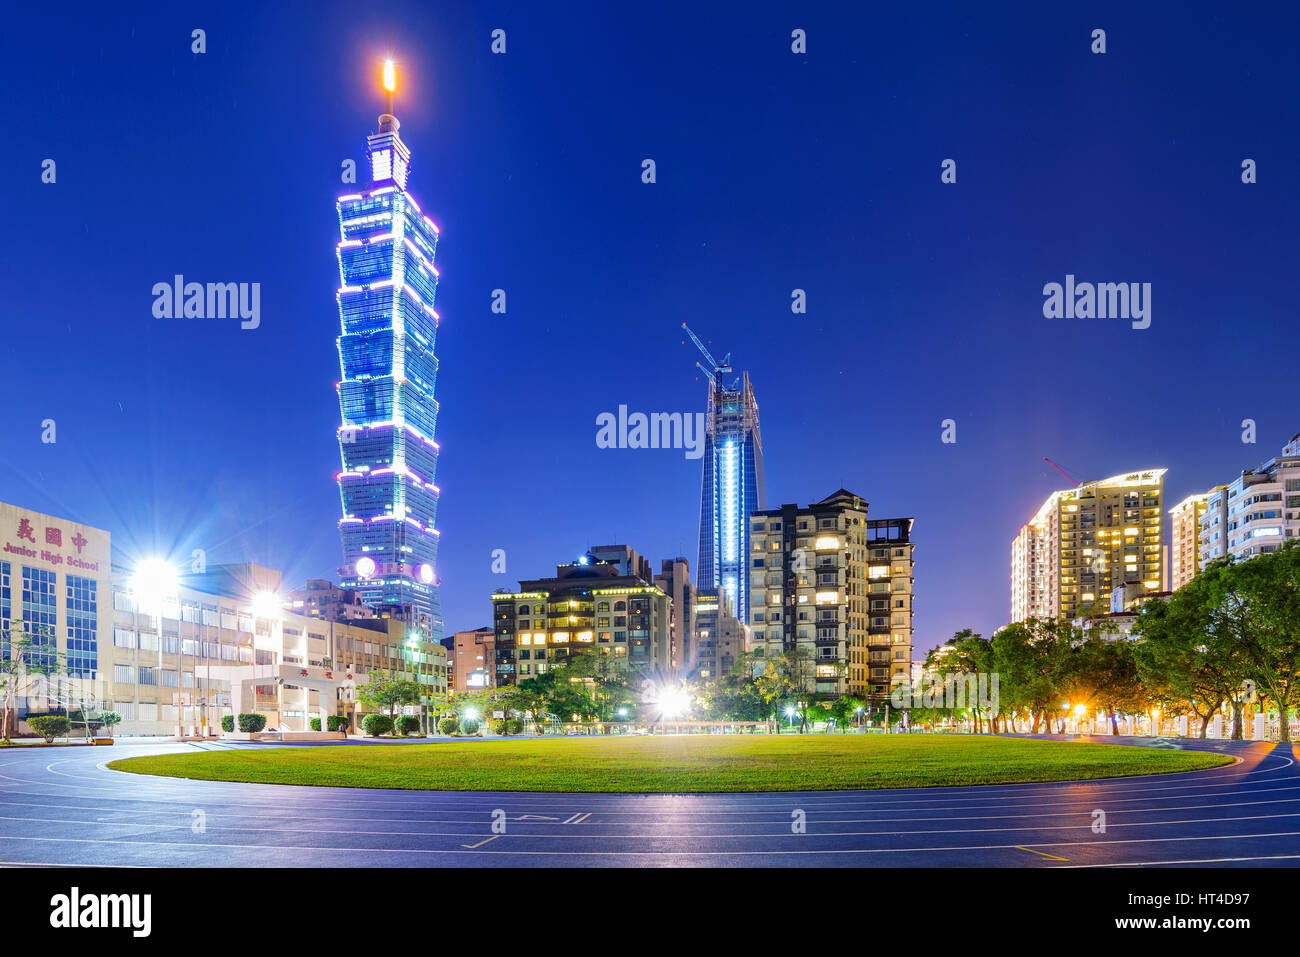 TAIPEI, TAIWAN - JANUARY 01: This is a night view of Taipei 101 and Xinyi financial district apartments and buildings - Stock Image